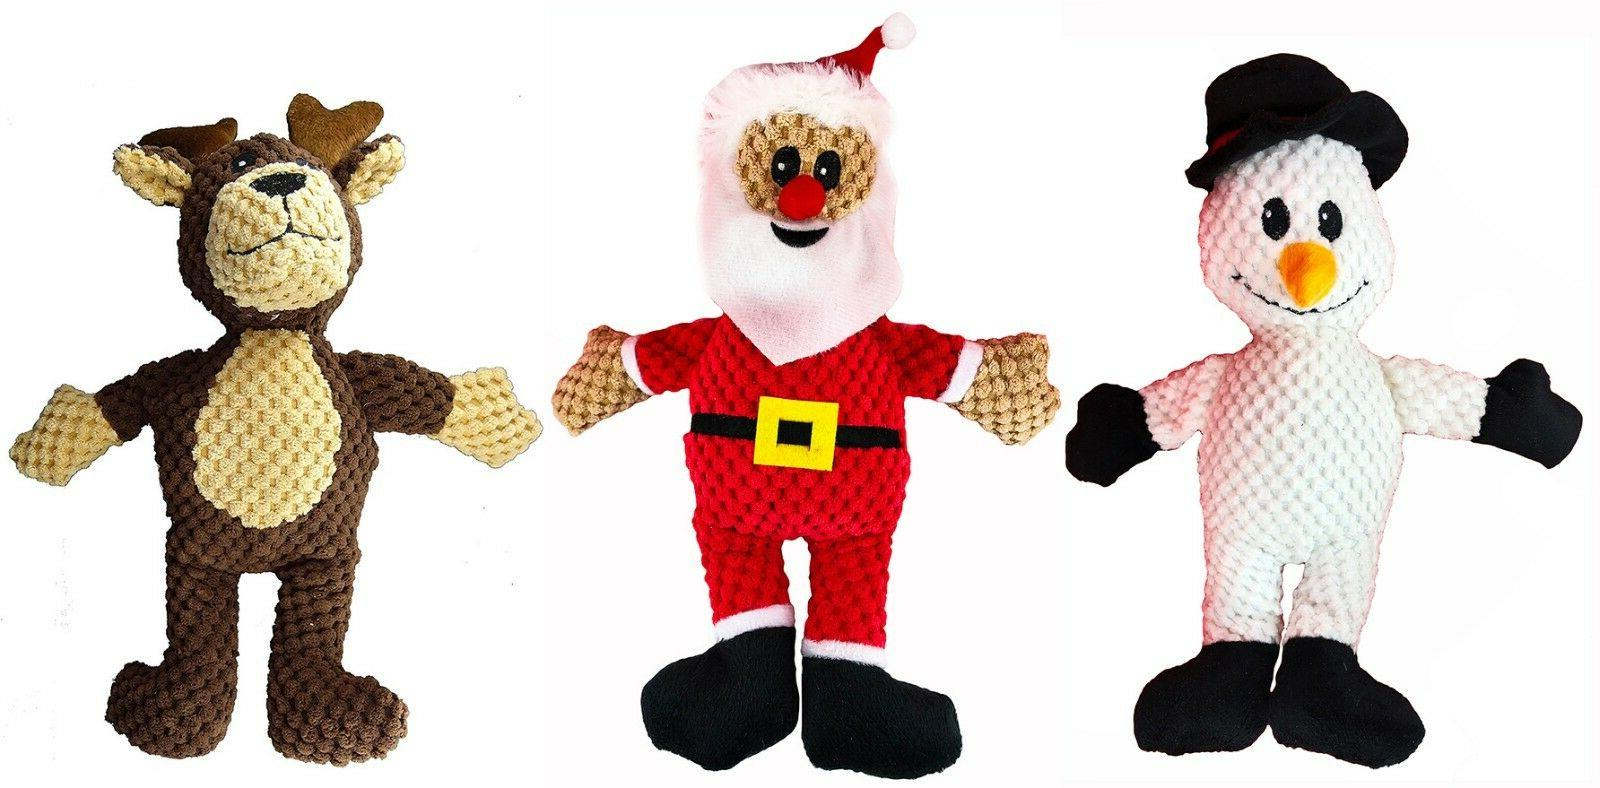 3-Pack Squeaker Plush Play Squeaky